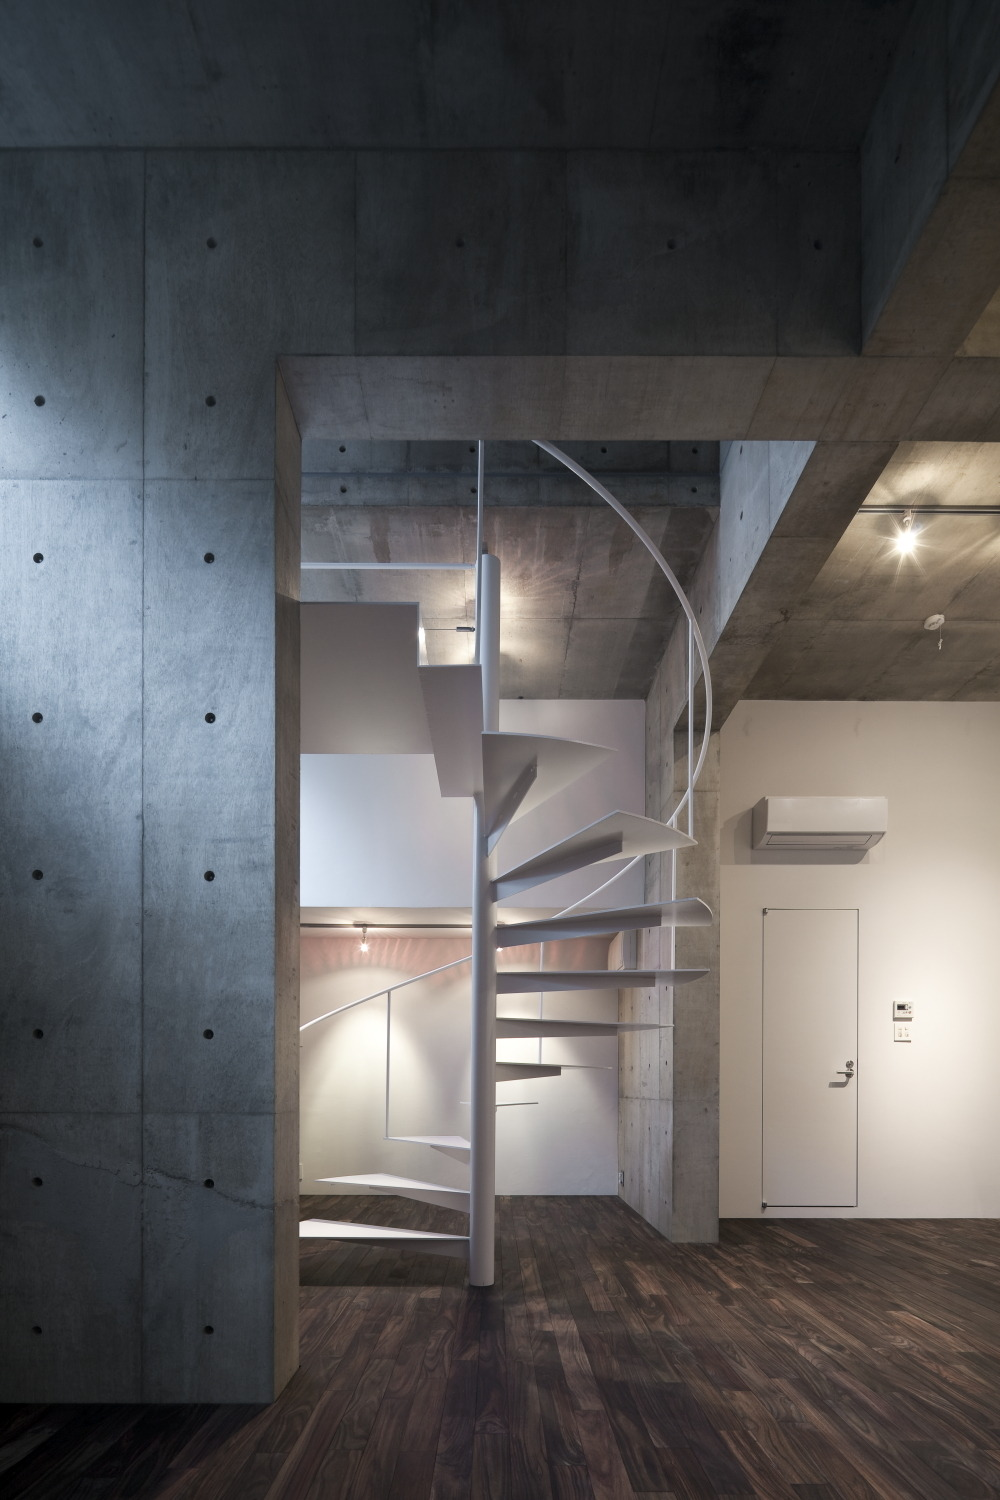 justthedesign:  Staircase Design By Architects Komada Yuka + Takeshi